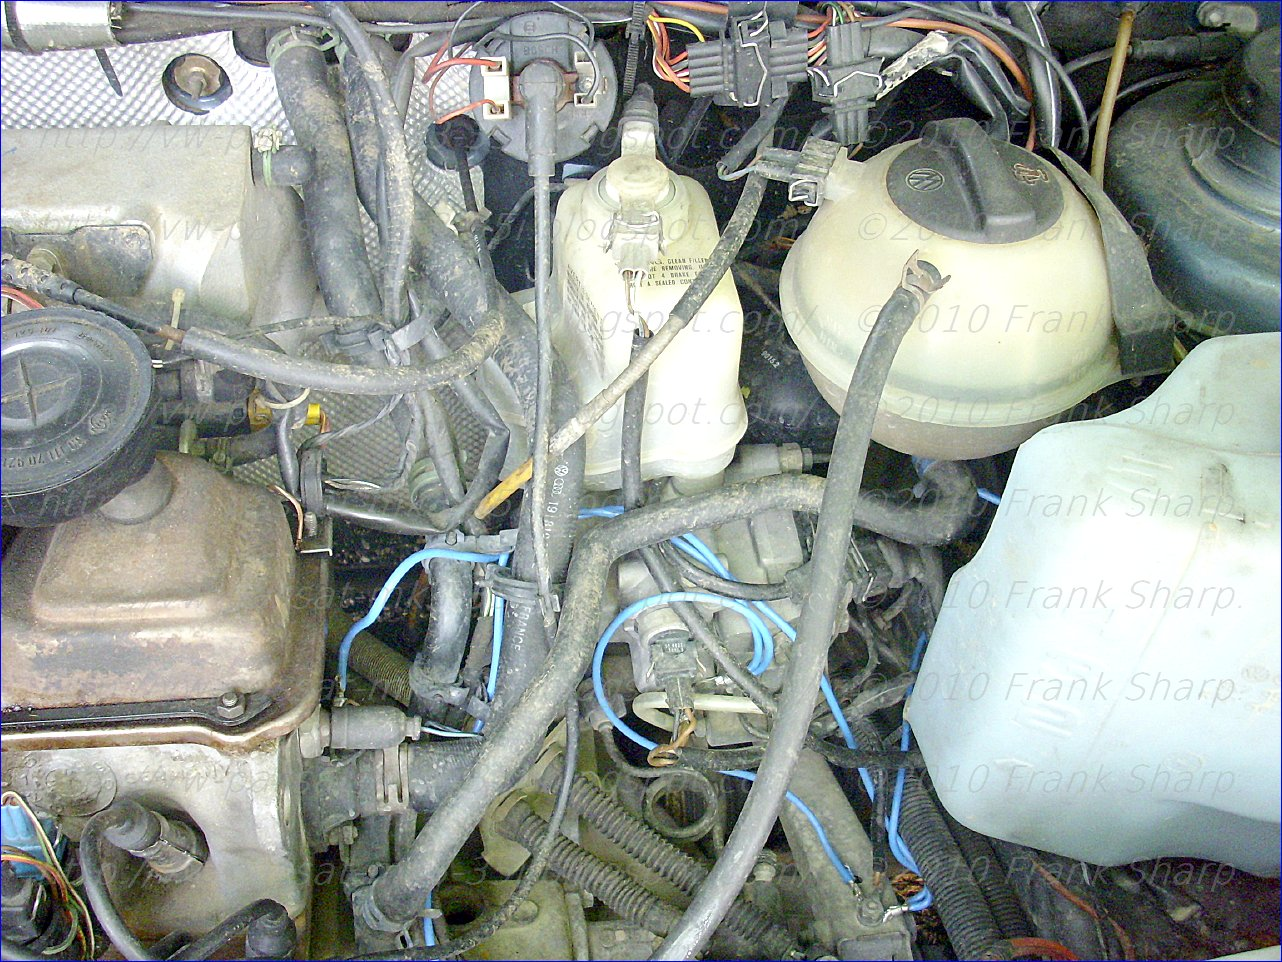 vw jetta engine parts view, 1992 vw golf engine, vw mk3 2 0, on vw golf mk3 engine diagram